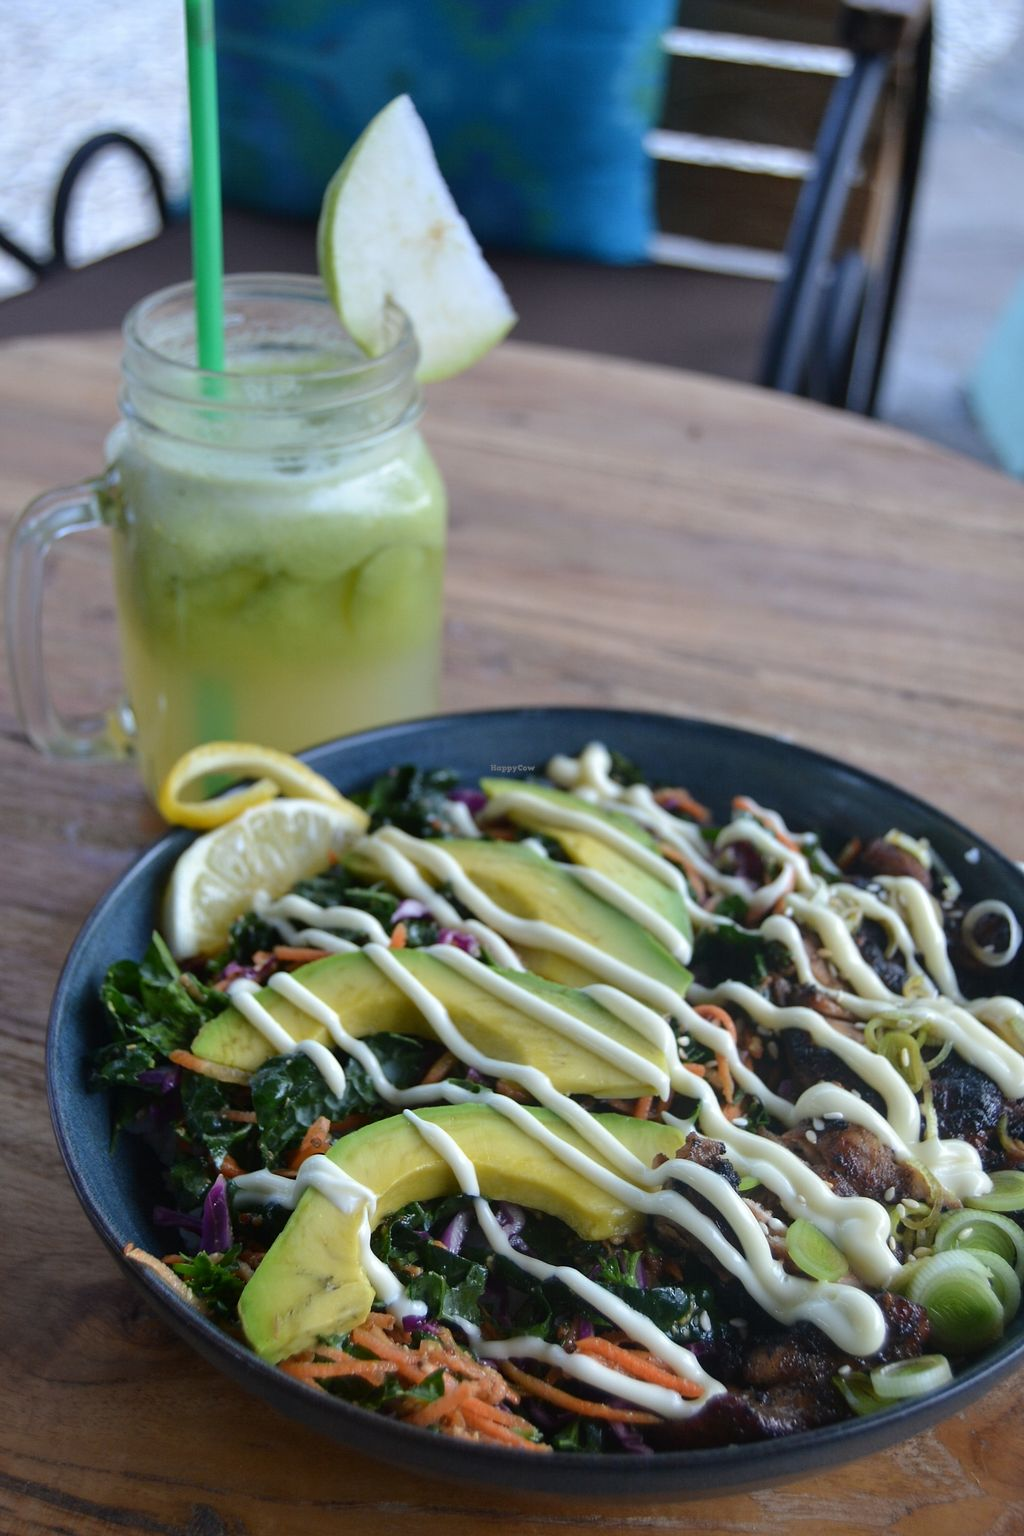 """Photo of The Cashew Tree  by <a href=""""/members/profile/germina_paola"""">germina_paola</a> <br/>Teriyaki Buddha Bowl <br/> December 23, 2017  - <a href='/contact/abuse/image/75644/338253'>Report</a>"""